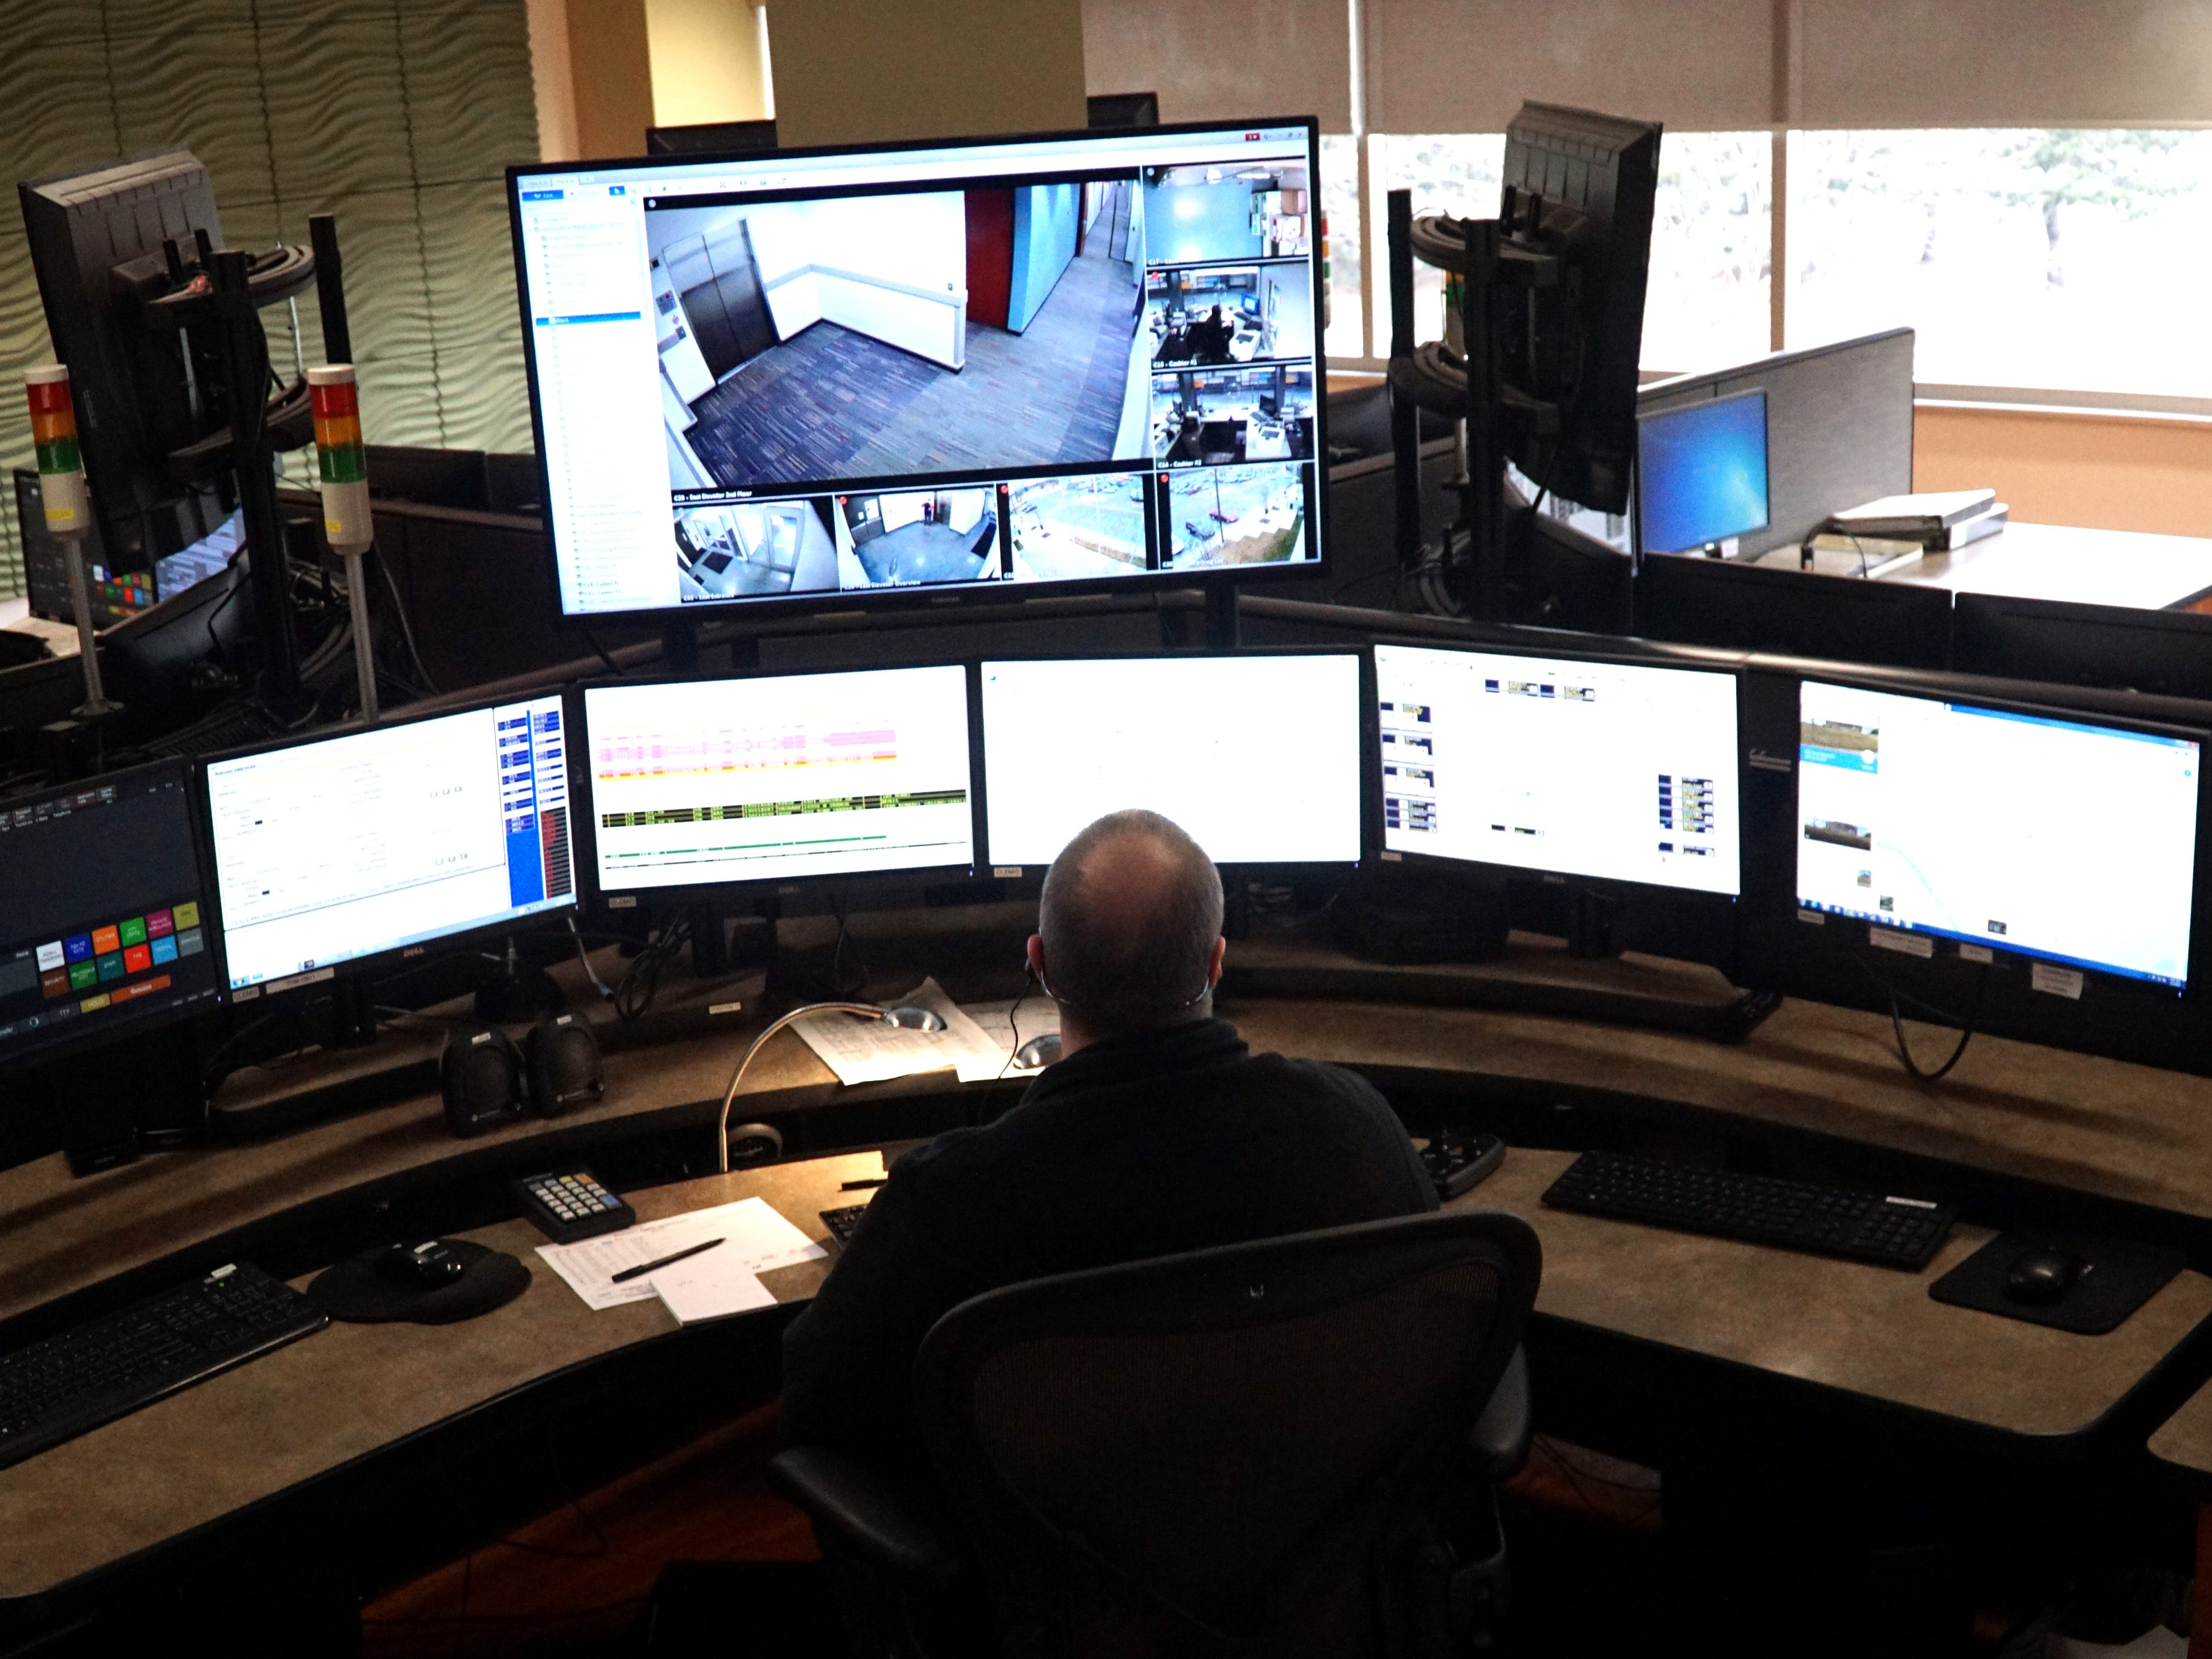 Dearborn dispatcher Brian Black stares at rows of monitors as he handles 911 calls on April 4.